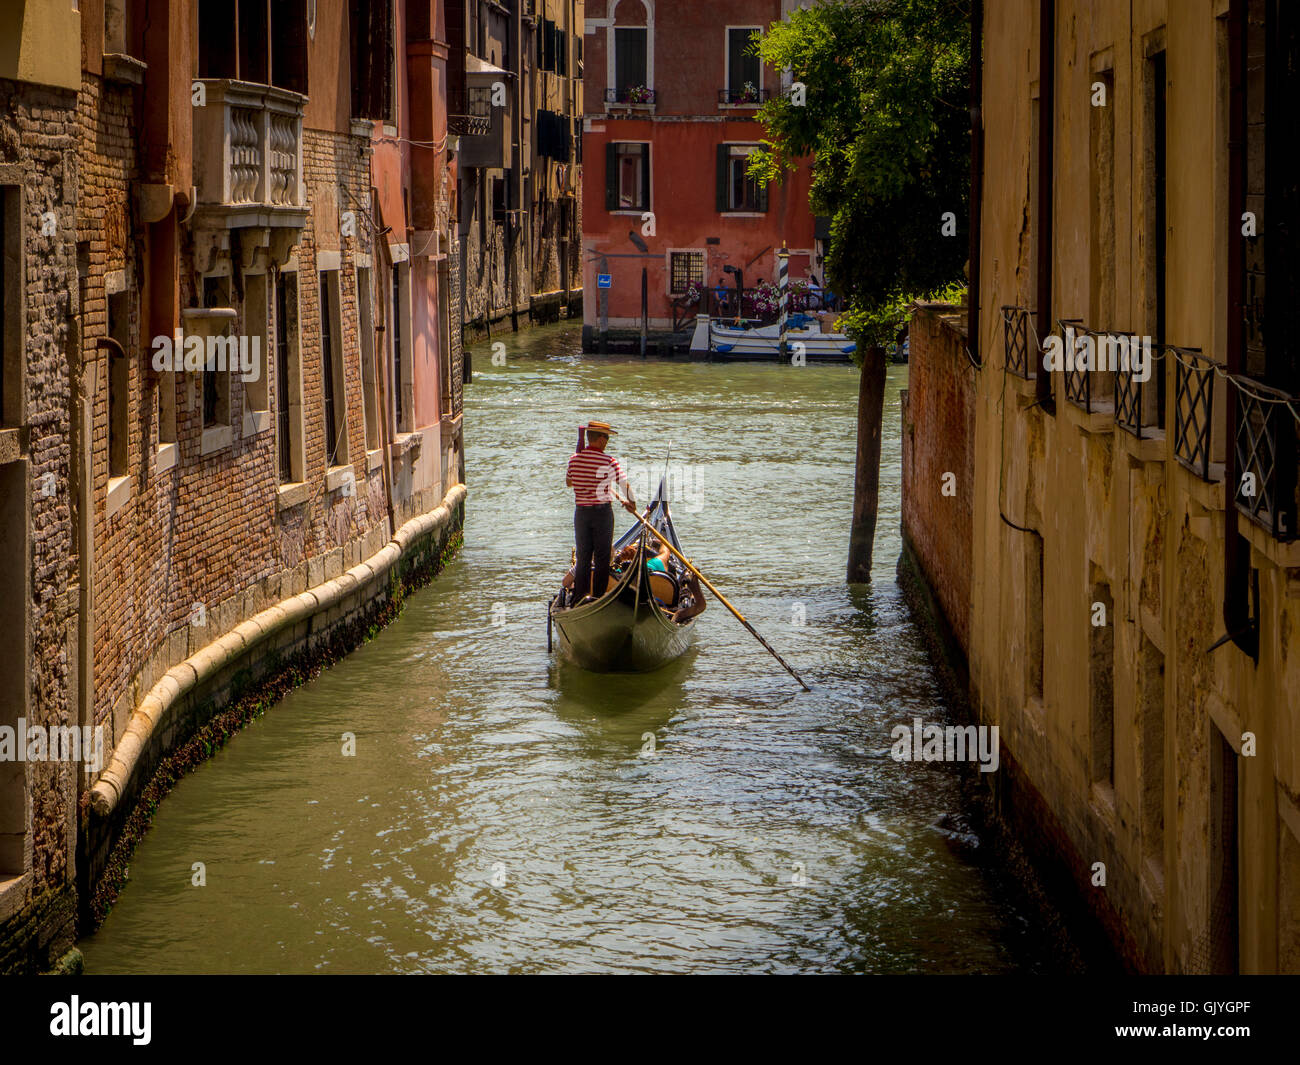 79d5a4fcb57 Single gondolier wearing a traditional boater hat and striped top  propelling his gondola along a canal